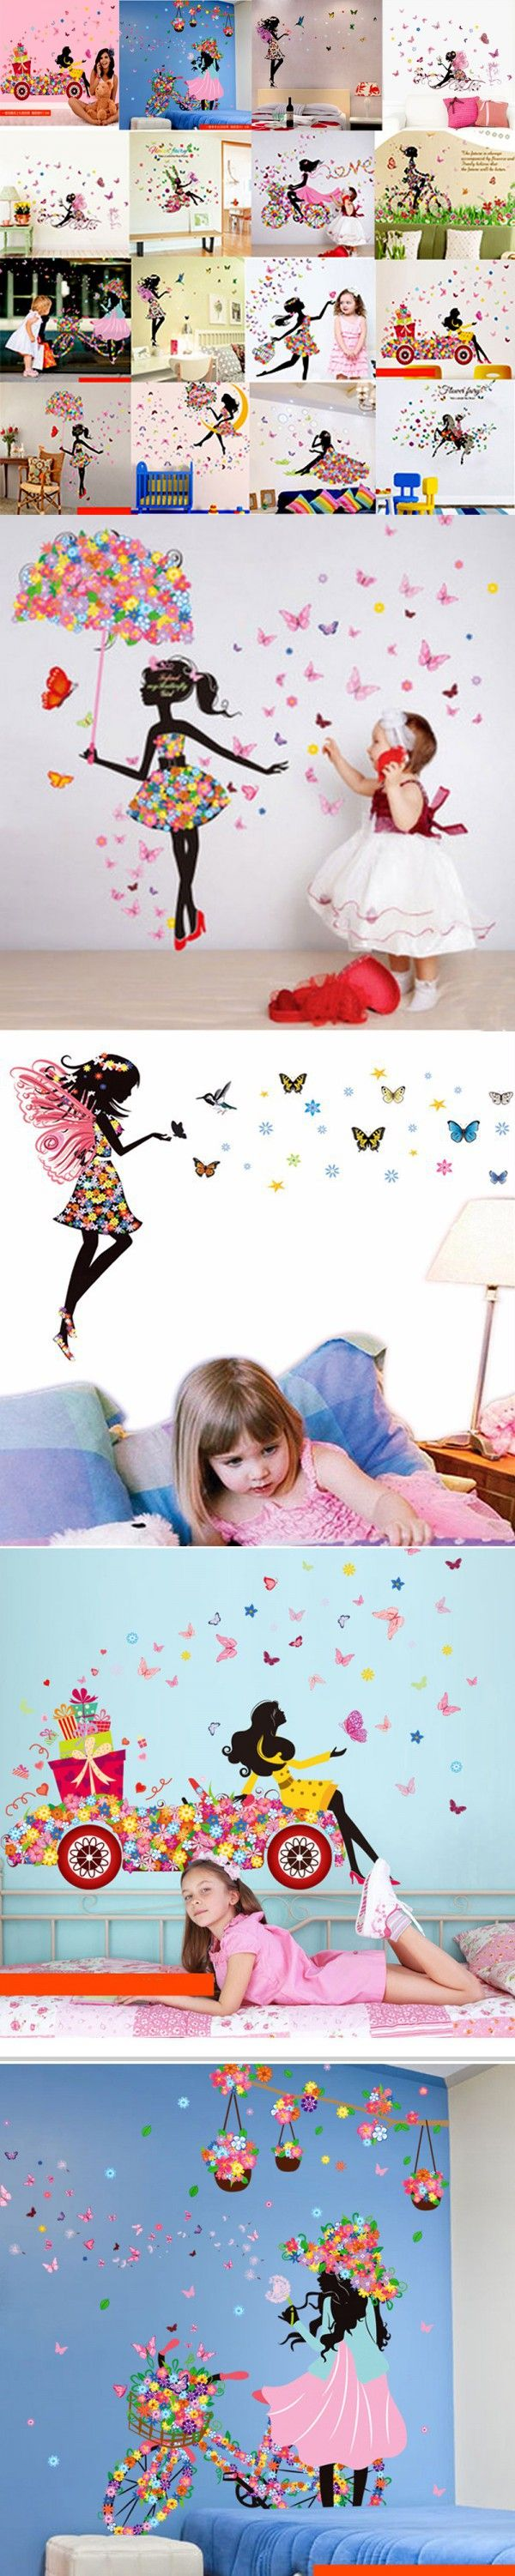 best 25 wall stickers for kids ideas on pinterest army room very nice butterfly elf and cute girl art poster wall stickers for kids room home decor bedroom living room fashion wall sticker